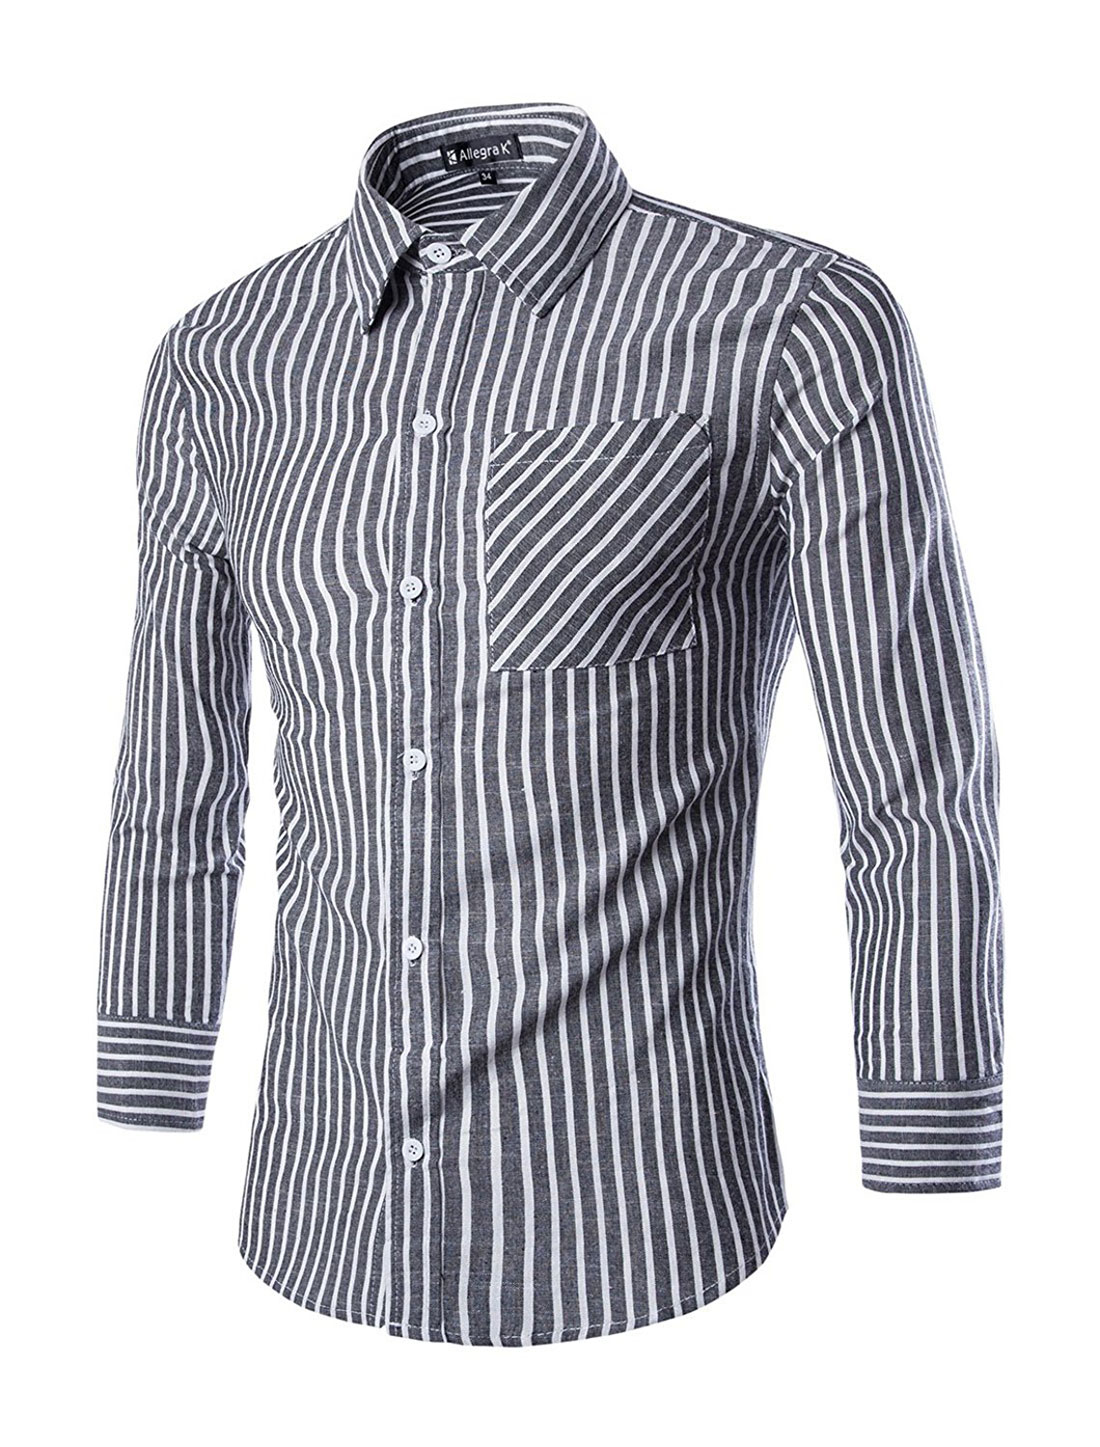 Unique Bargains Men's Basic Collar Striped Button Down Shirts Gray White (Size M / 38)